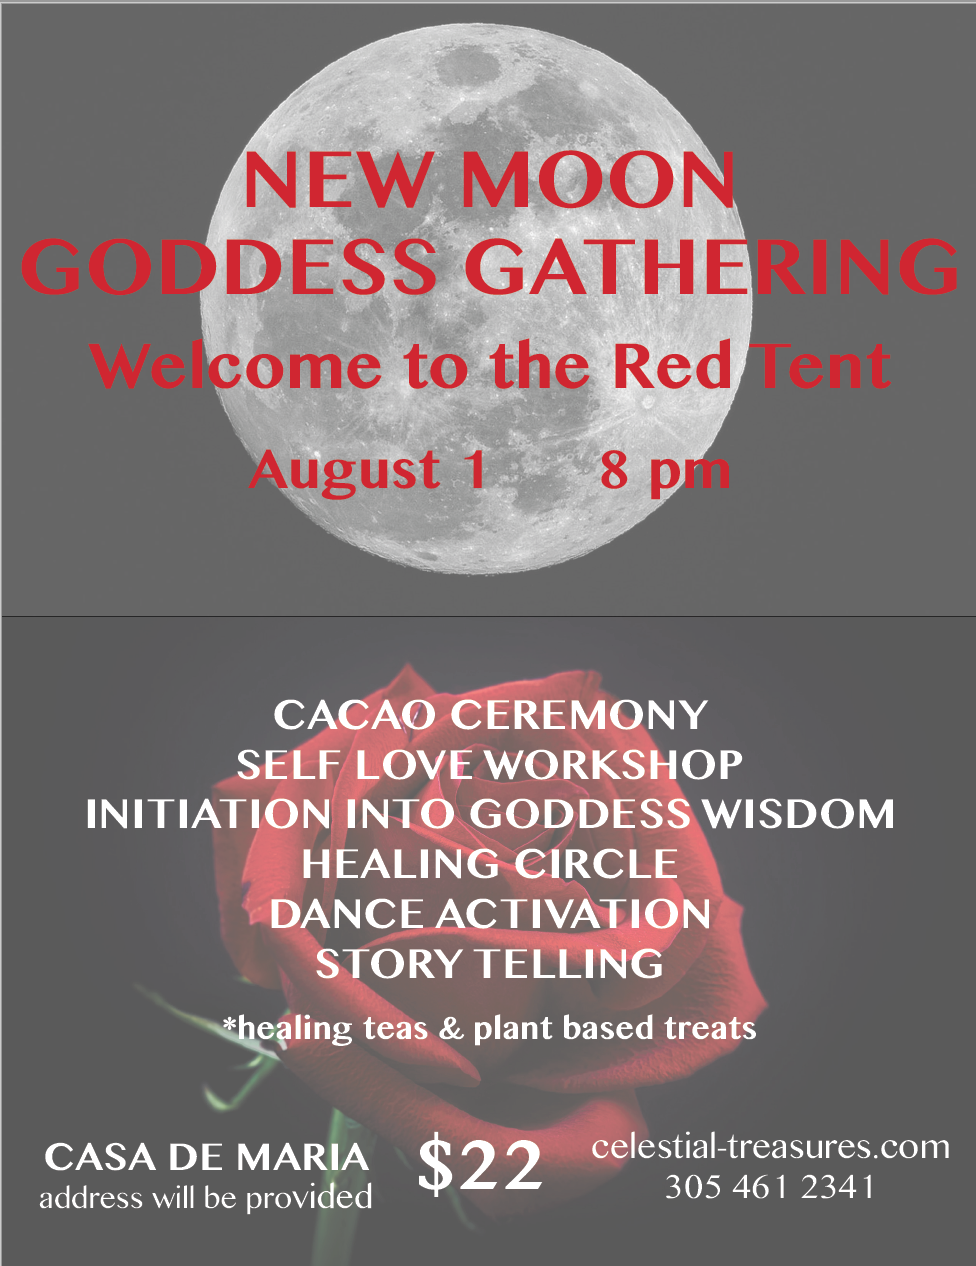 Welcome to the Red Tent!  The red tent phenomenon is a movement of monthly healing gatherings for women.  It is inspired by the legacy of our ancestors, who gathered once a month for thousands of years during each month's New Moon to heal, rest, release, nourish, and support each other.  The time is now for women to reclaim our birthright of receiving each other's support and sharing our stories, in a safe, healing space!  This month will feature a cacao ceremony, a gentle self love workshop, music and dance, and of course a storytelling/ sharing circle. Join our host Maria as she guides us on an initiatory journey into the wisdom and healing support of the divine feminine, in a nourishing, beautiful setting.  The Red Tent is a place to take a break from the rest of the world, receive food for the soul, and connect.  Women of all ages, faiths, backgrounds, etc., are more than welcome!  Healing teas and plant based treats will be provided!     May we each awaken to our own inner goddess, as we celebrate life together and share our unique journeys of healing, of rebirth, of coming home.  .  Don't forget to bring:  1. Comfy clothes  2. Water  3. Any stories you'd like to share  4. An open heart     Location: Casa de Maria  Address information provided with your ticket!  TICKET LINK - https://www.eventbrite.com/e/new-moon-goddess-gathering-tickets-64507052330